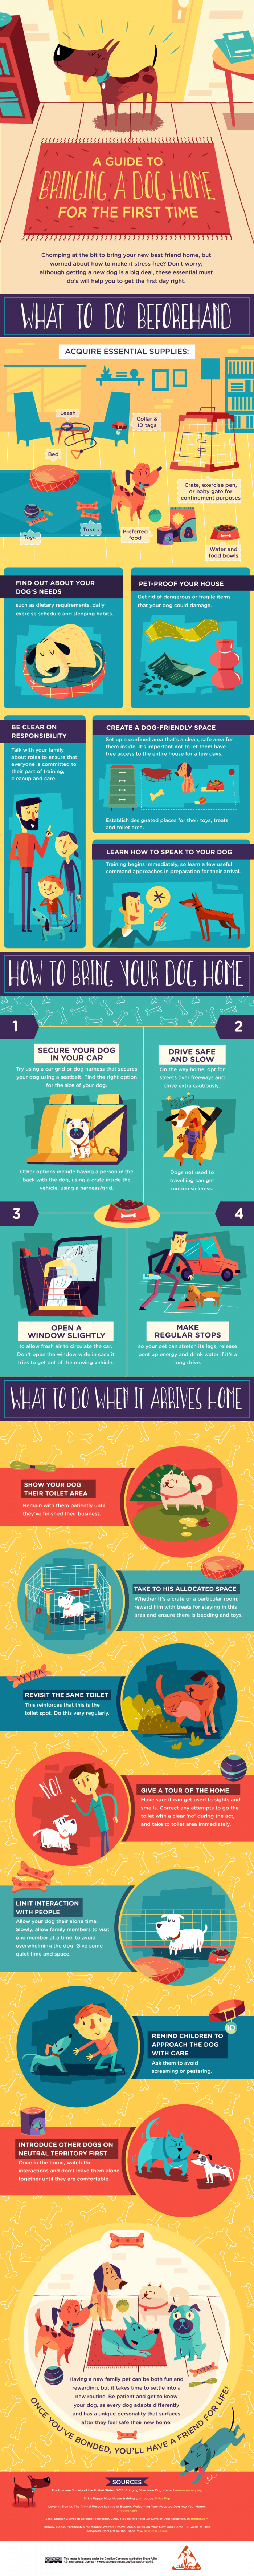 Guide to Caring for Your First Dog Infographic